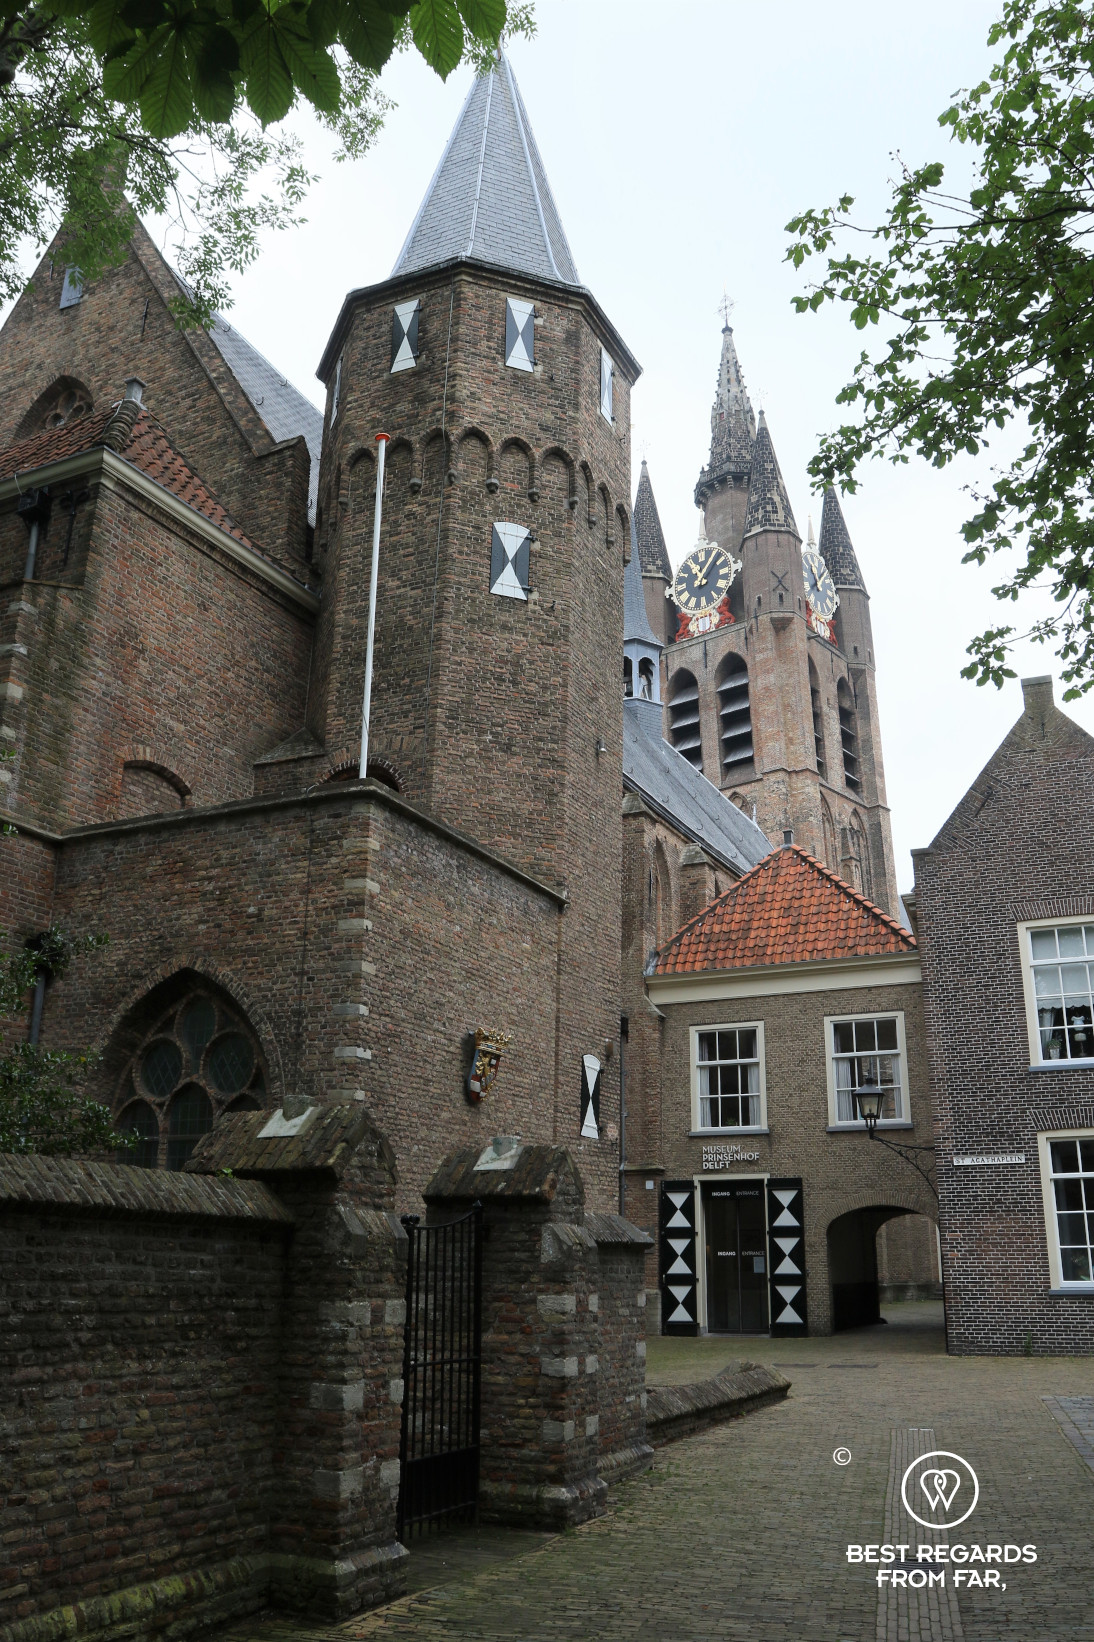 The prinsenhof with the Old Church in the background, Delft